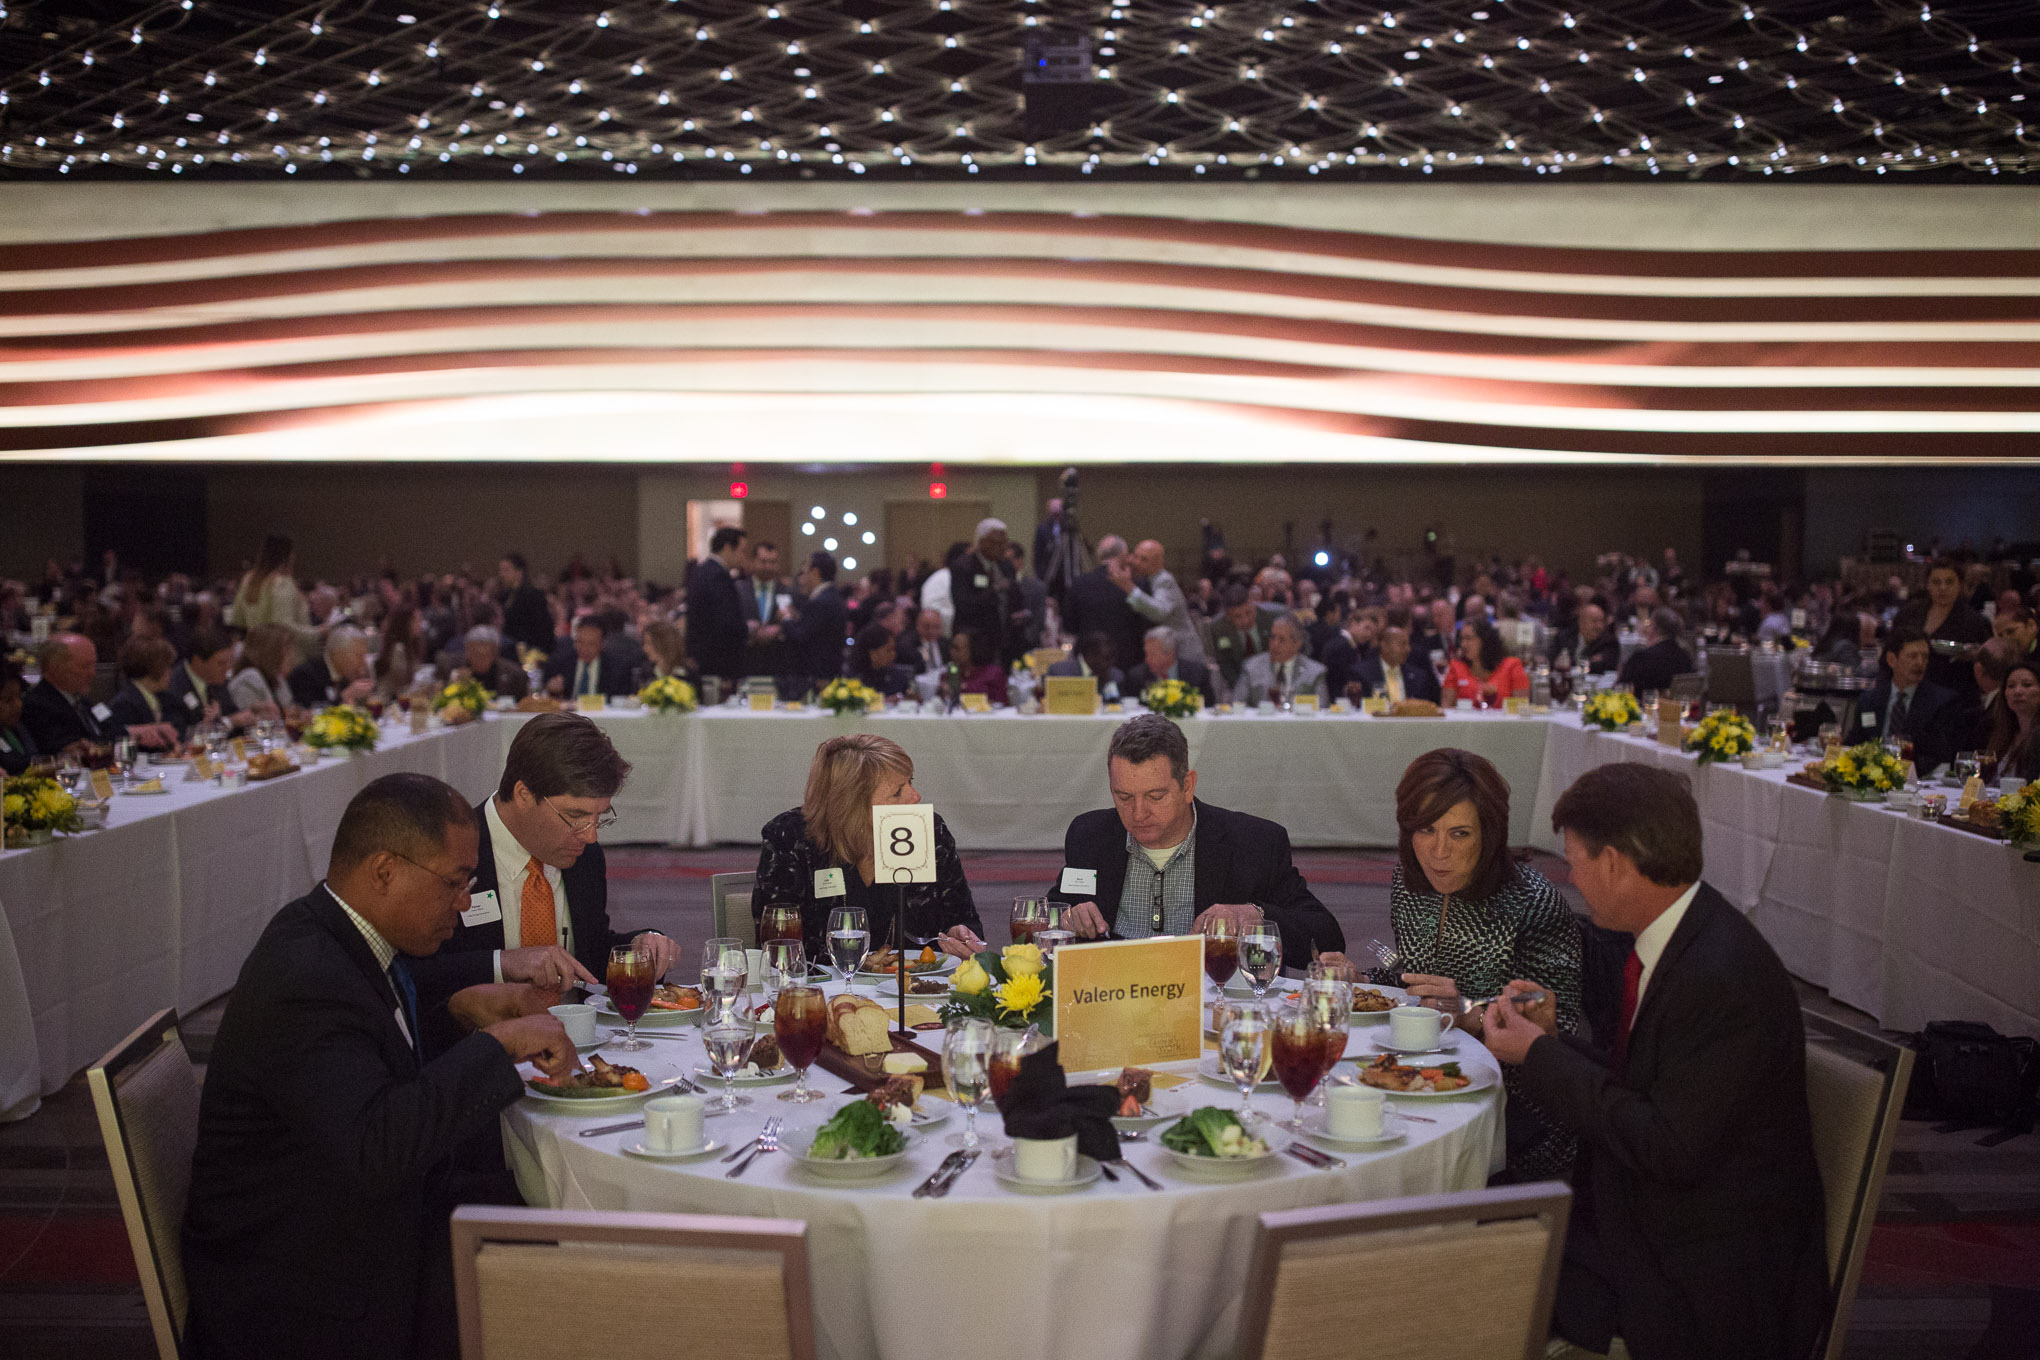 Valero Energy dines at a close proximity to the stage and in front of the head table. Photo by Scott Ball.